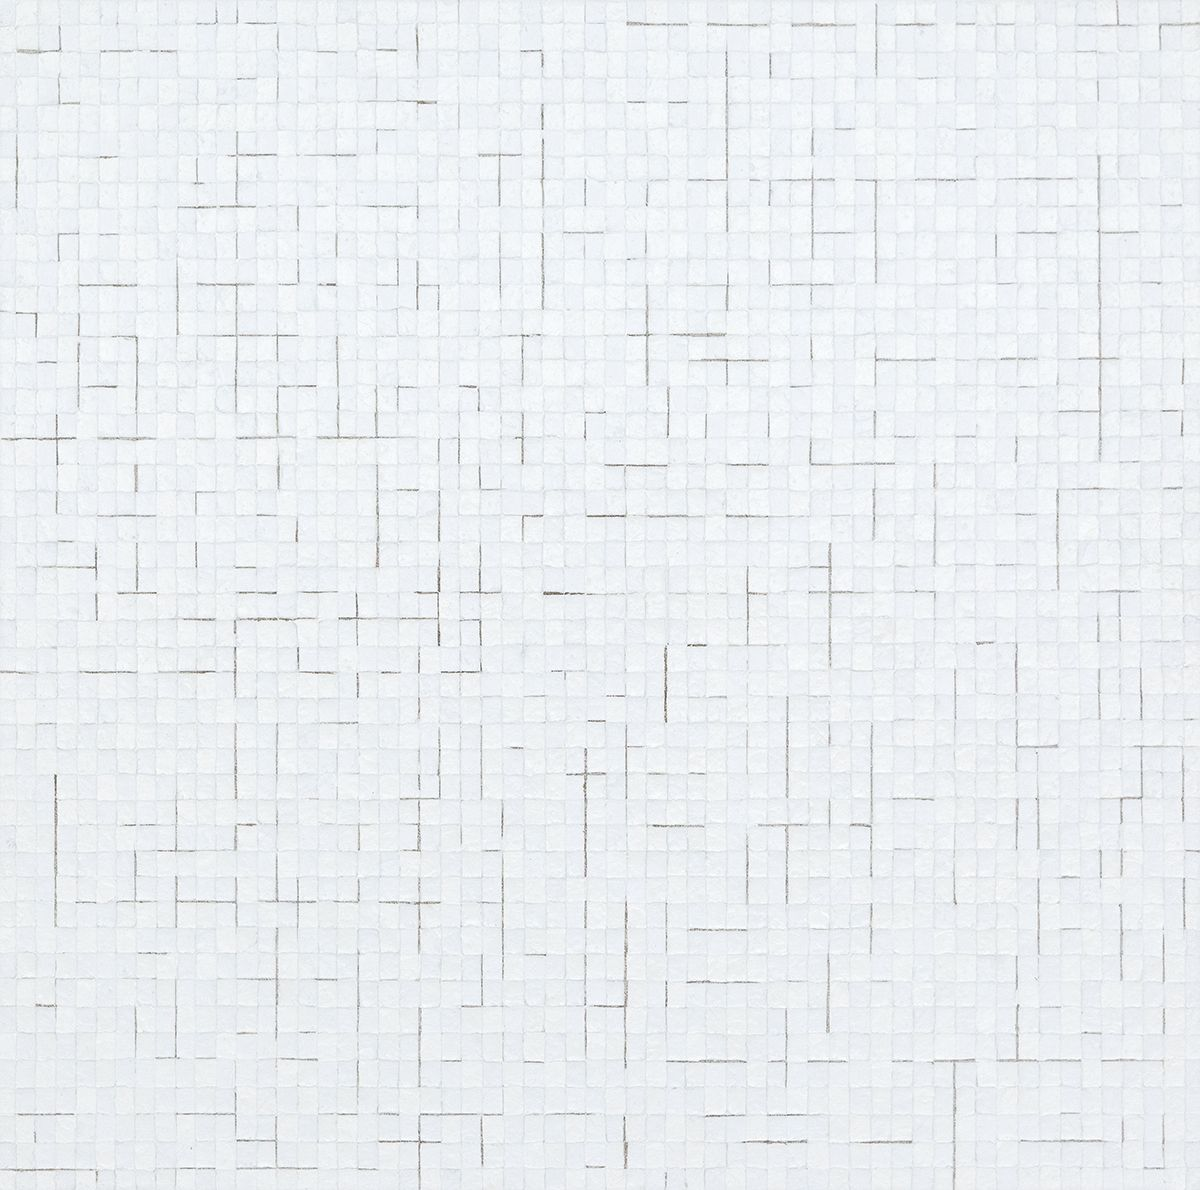 Chung Sang-Hwa Untitled 2014-7-24, 2014 Acrylic and kaolin on canvas 39 3/8 x 39 3/8 inches (100 x 100 cm)